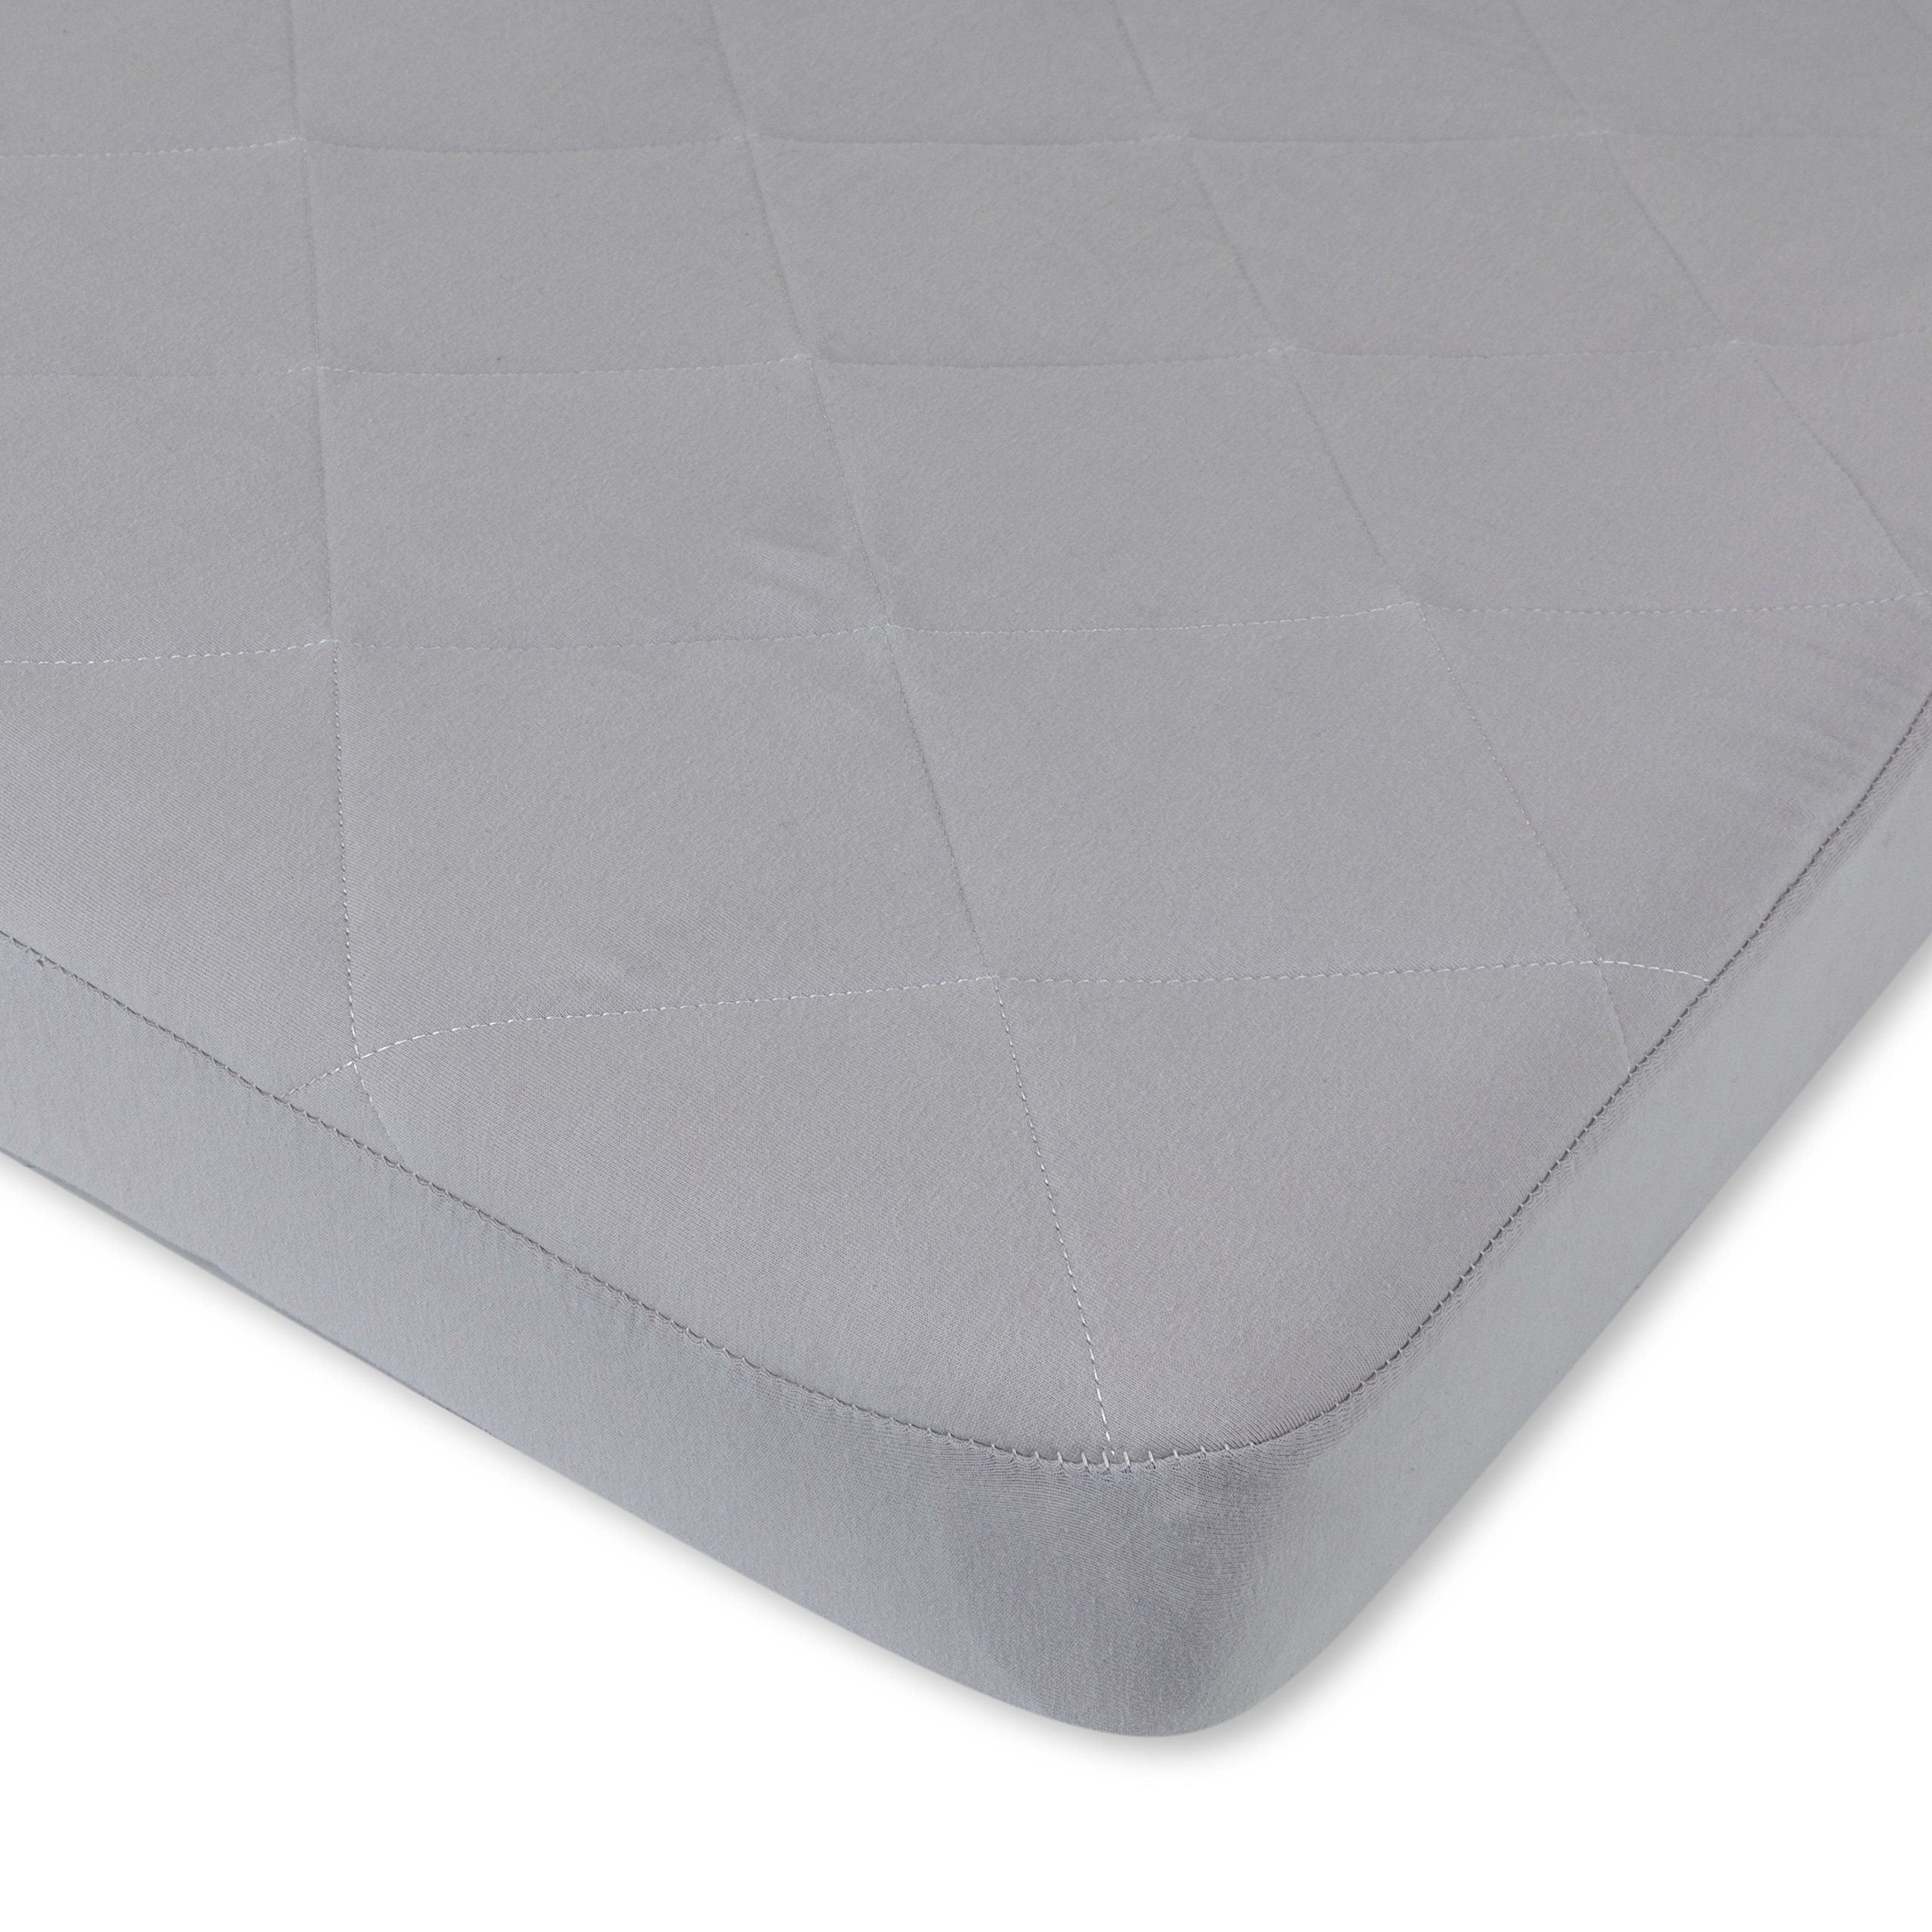 Waterproof Cotton Quilted Pack n Play Sheet | Mini Crib Sheet | New Revised Fit with Added Heat Protection |All in one Mattress Pad Cover and Cozy Sheet, Grey by Ely's & Co by Ely's & Co. (Image #3)